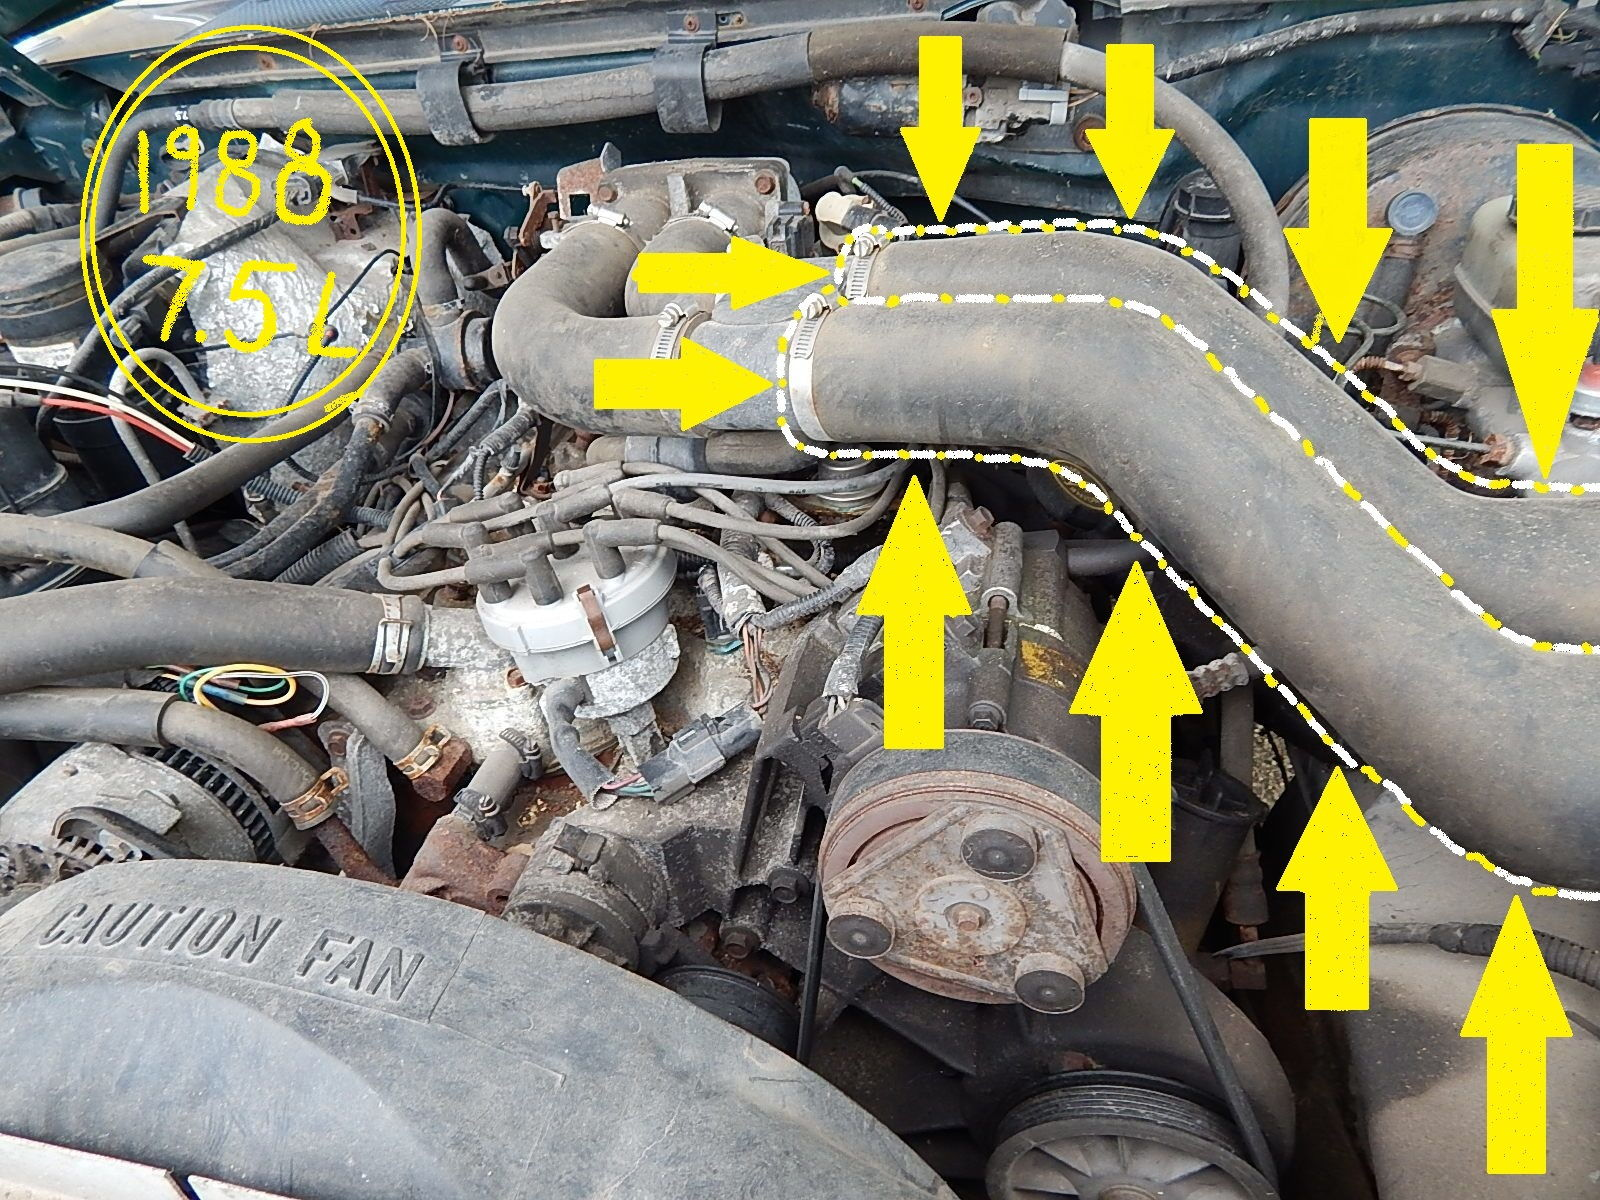 hight resolution of 1992 ford f 350 460 engine fuel injector wiring diagram air intake hose 1988 f250 460 efi ford truck